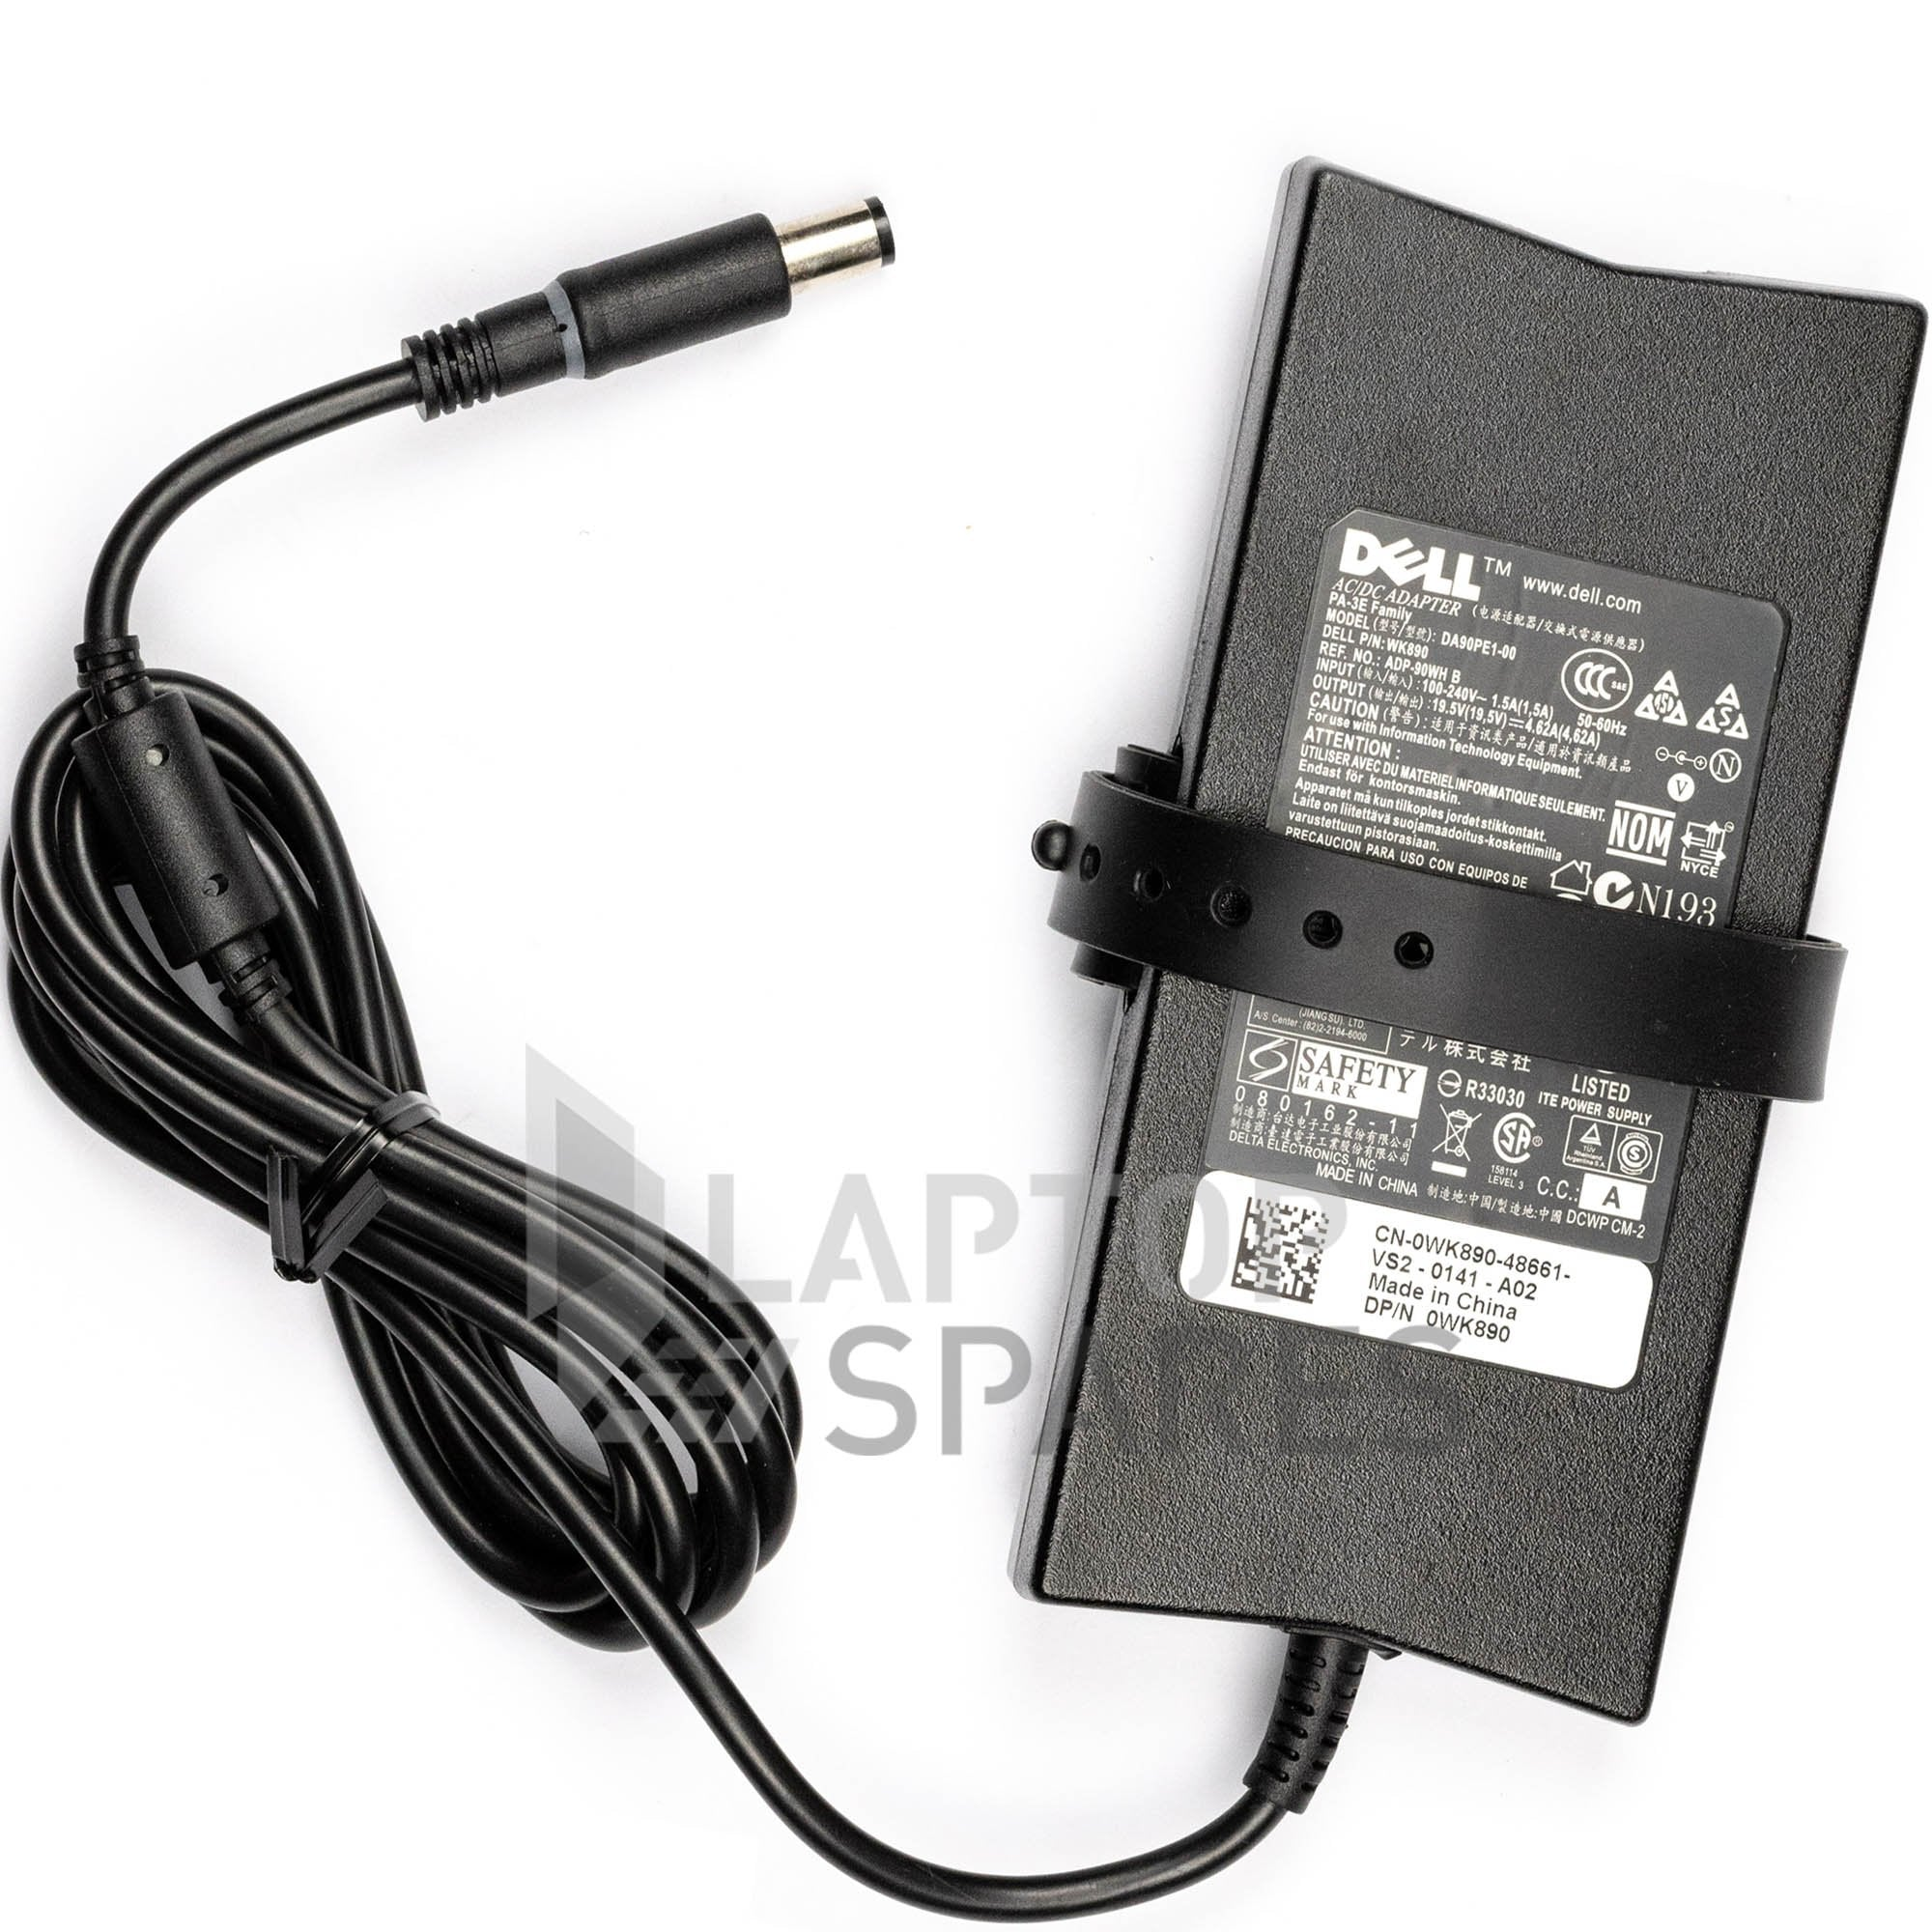 Dell Inspiron 17 1764 3721 Laptop Slim AC Adapter Charger